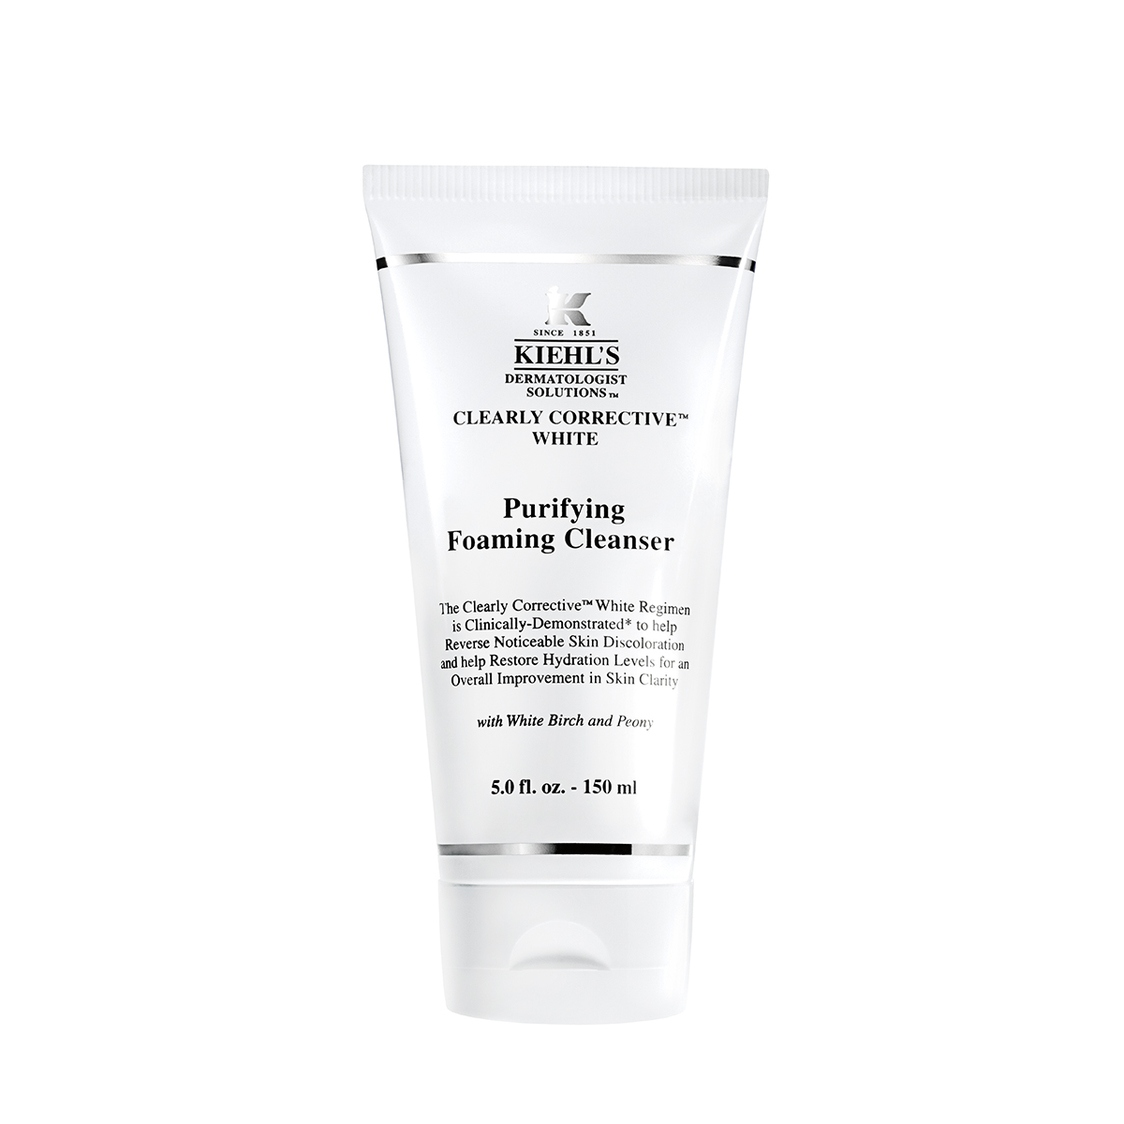 Dermatologist Solutions Clearly Corrective Purifying Foaming Cleanser 150ml